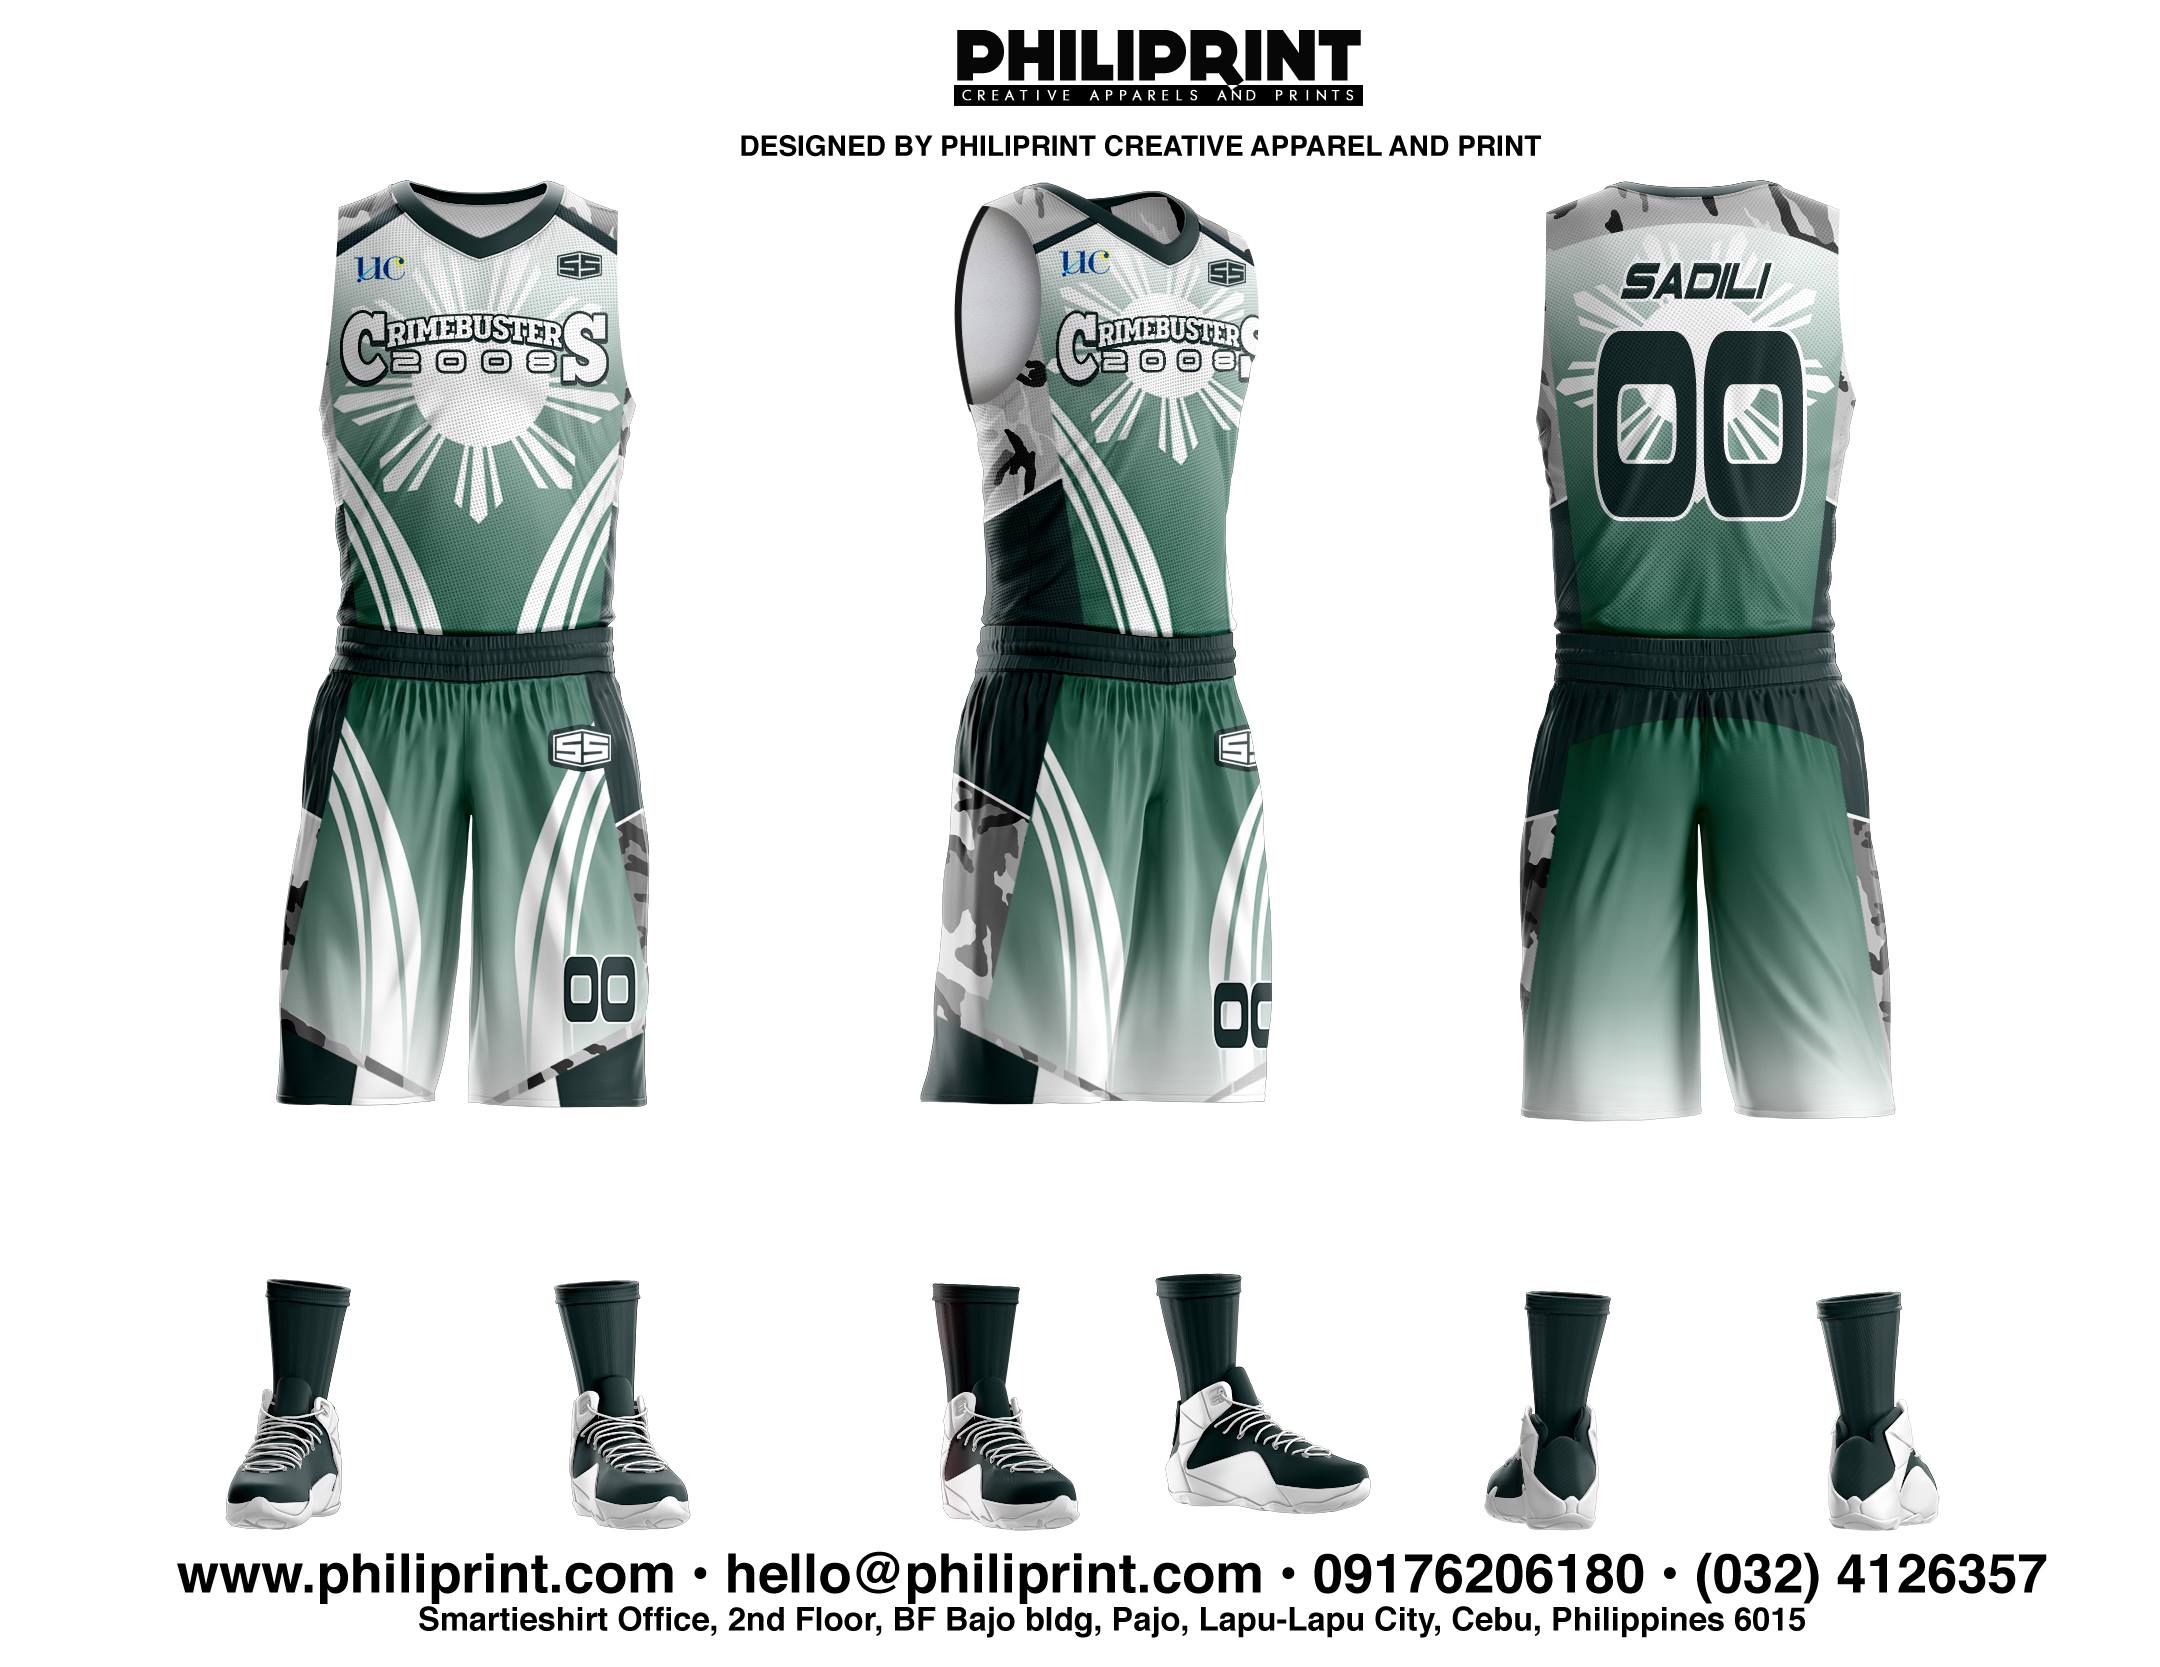 b56fbc91a Crimebusters Full Sublimation Basketball Jersey – Philiprint